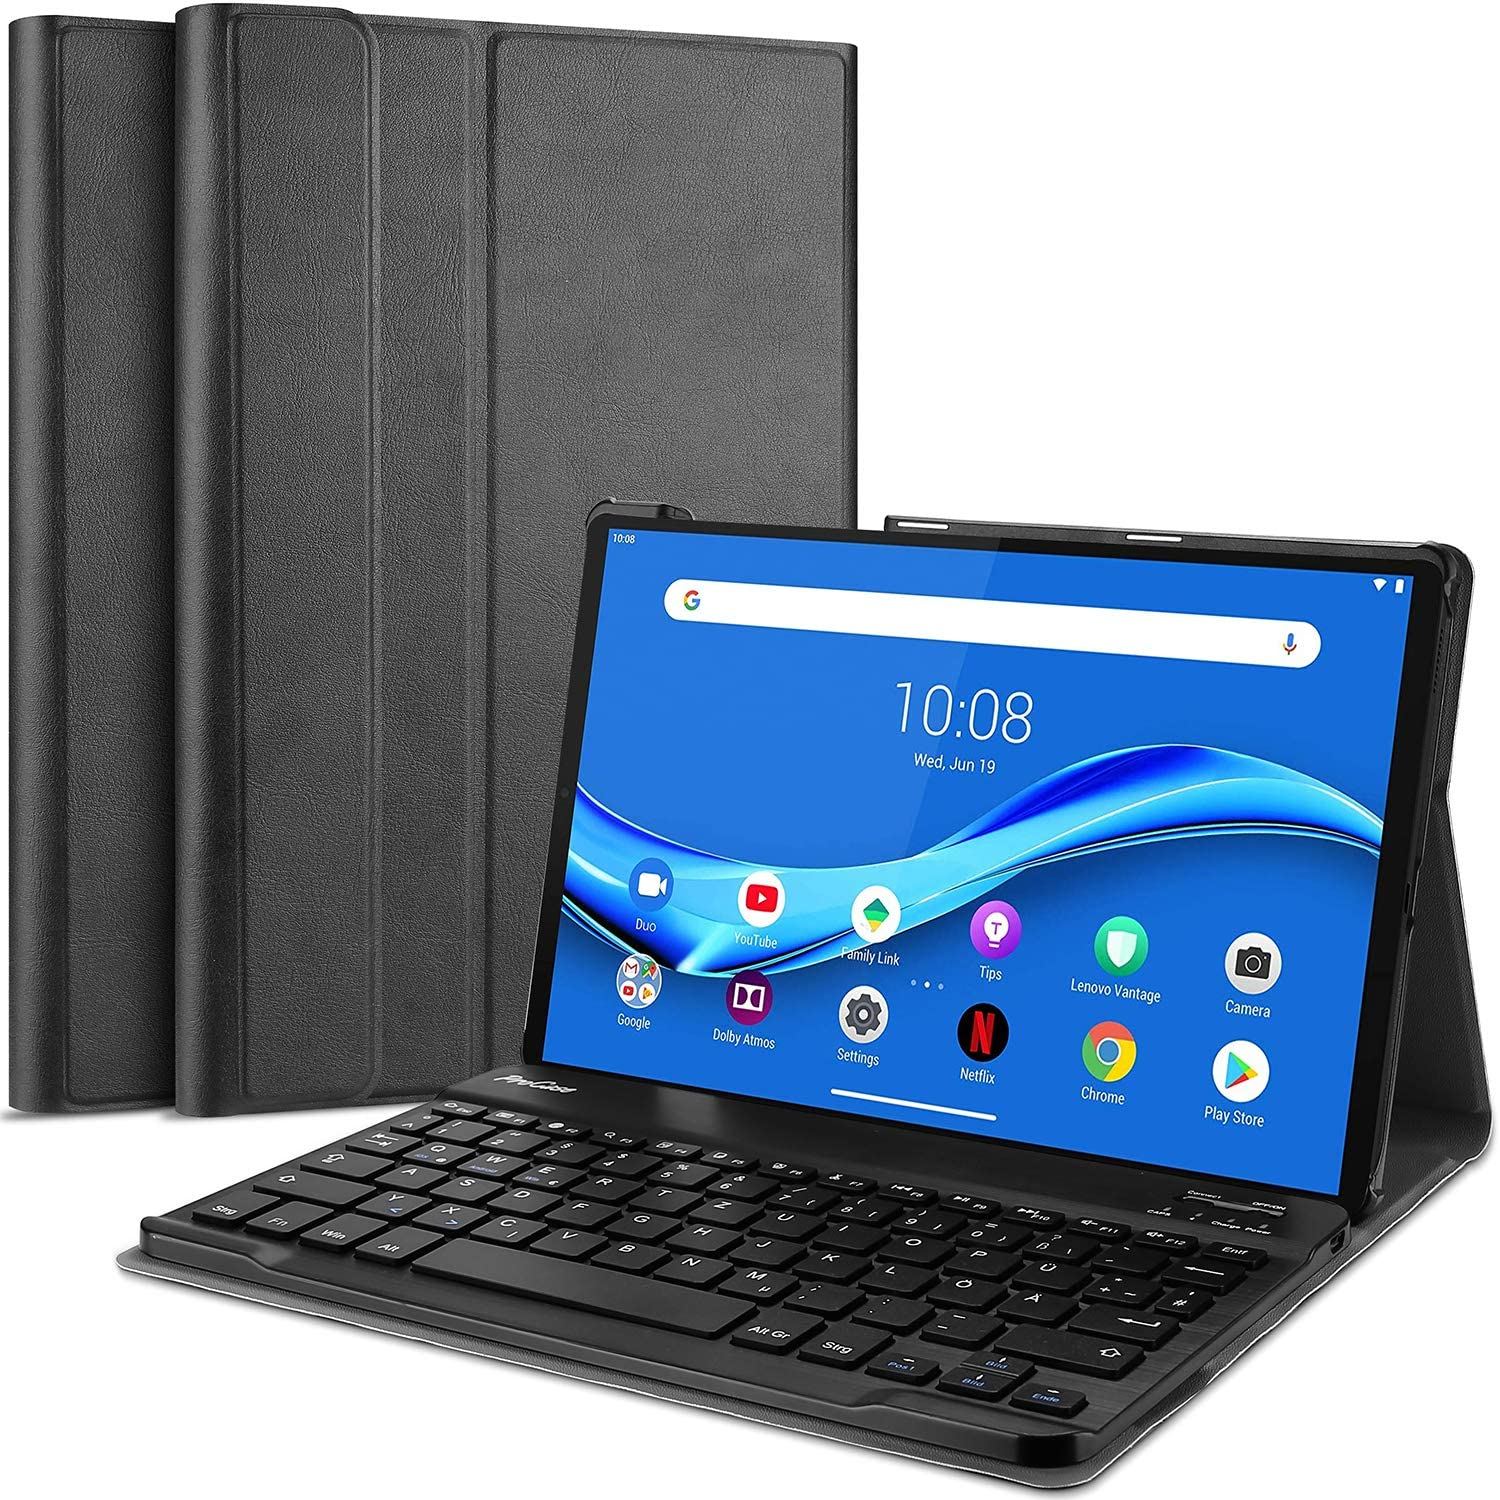 ProCase Lenovo Tab M10 FHD Plus Keyboard Case 10.3 Inch (2020 2nd Gen), Slim Lightweight Smart Cover with Magnetically Detachable Wireless Keyboard for Lenovo Tab M10 Plus TB-X606F TB-X606X –Black